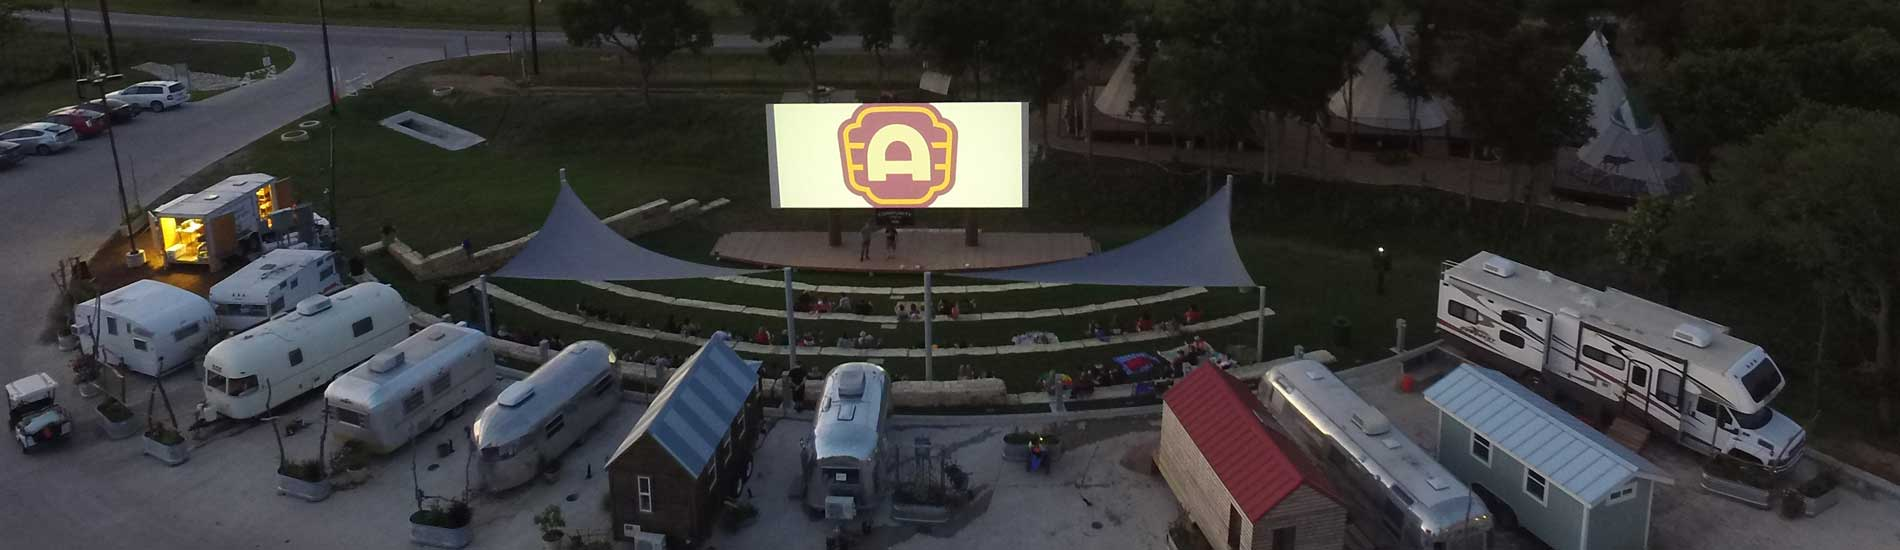 Community First Cinema Aerial 2